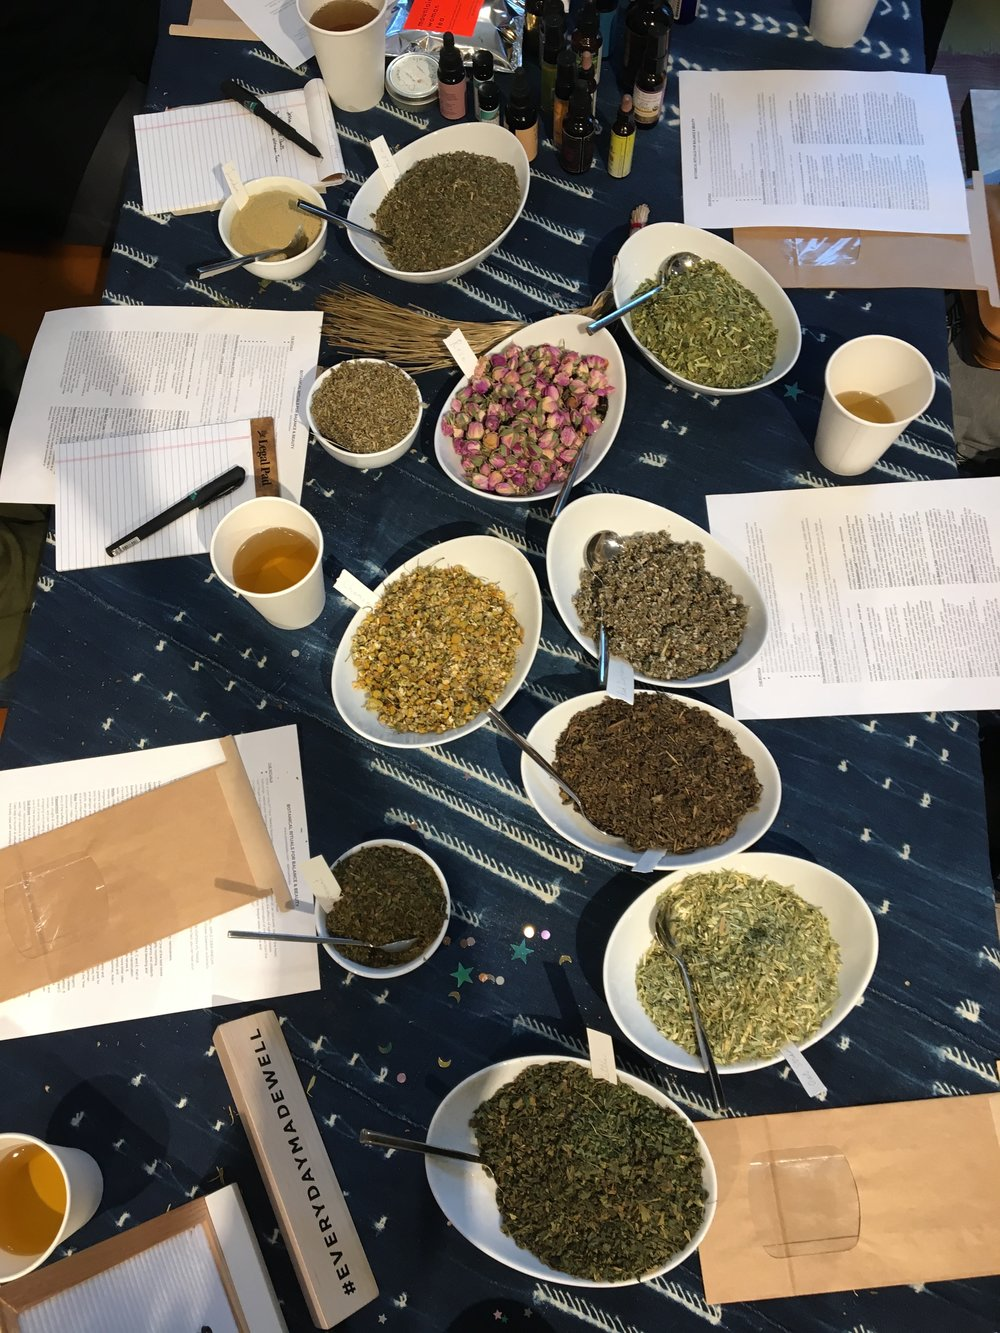 Workshop: Custom Herbal Tea Blending for Stress & Anxiety